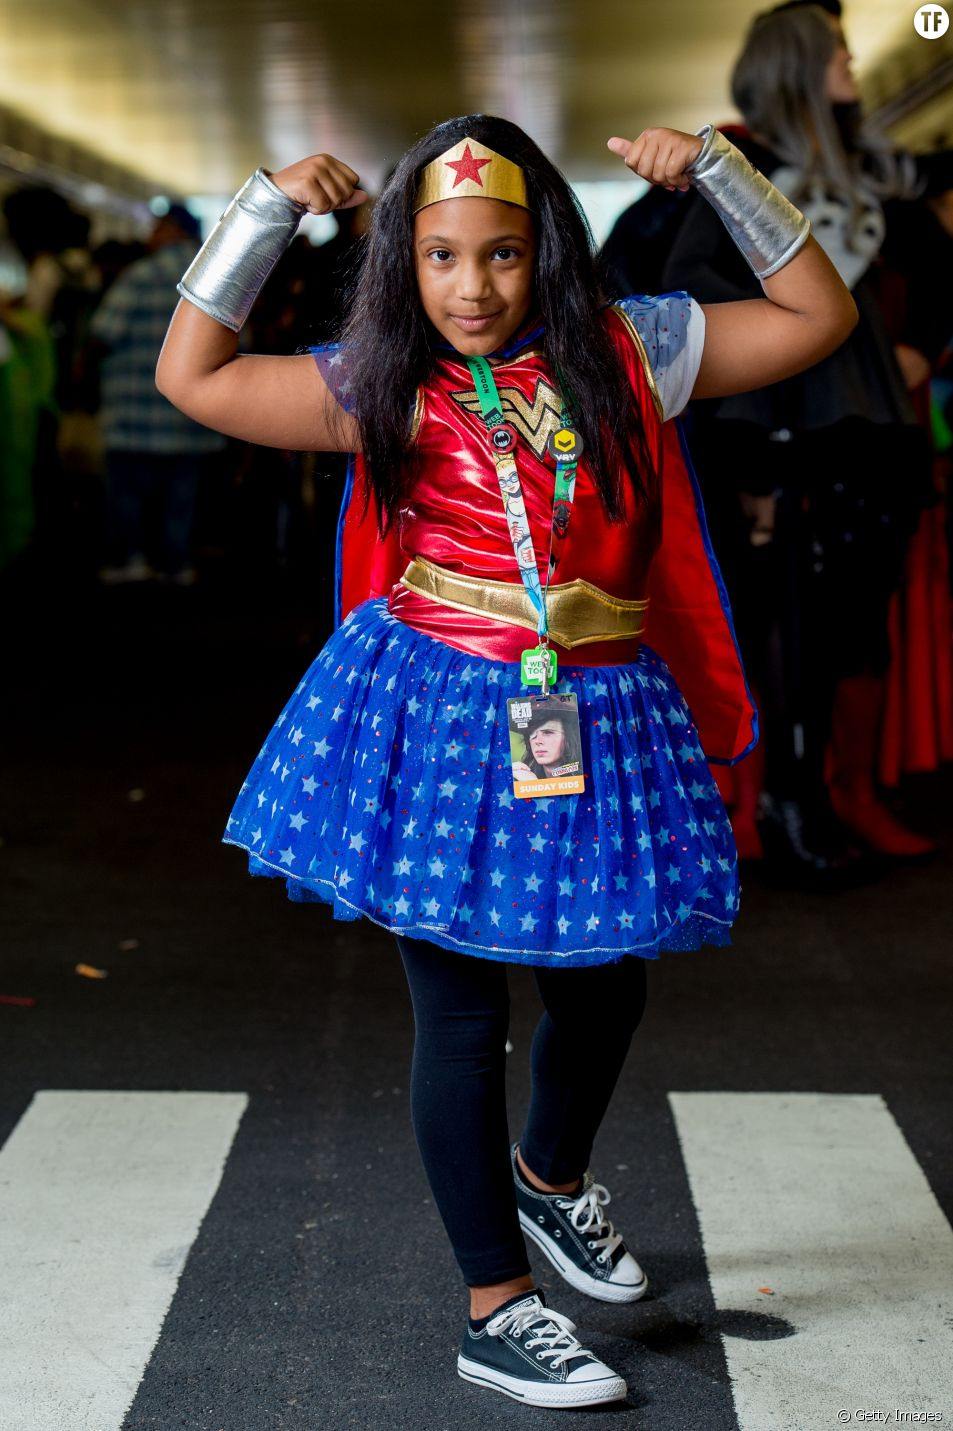 Une fille au Comic Con de New York le 8 octobre 2018